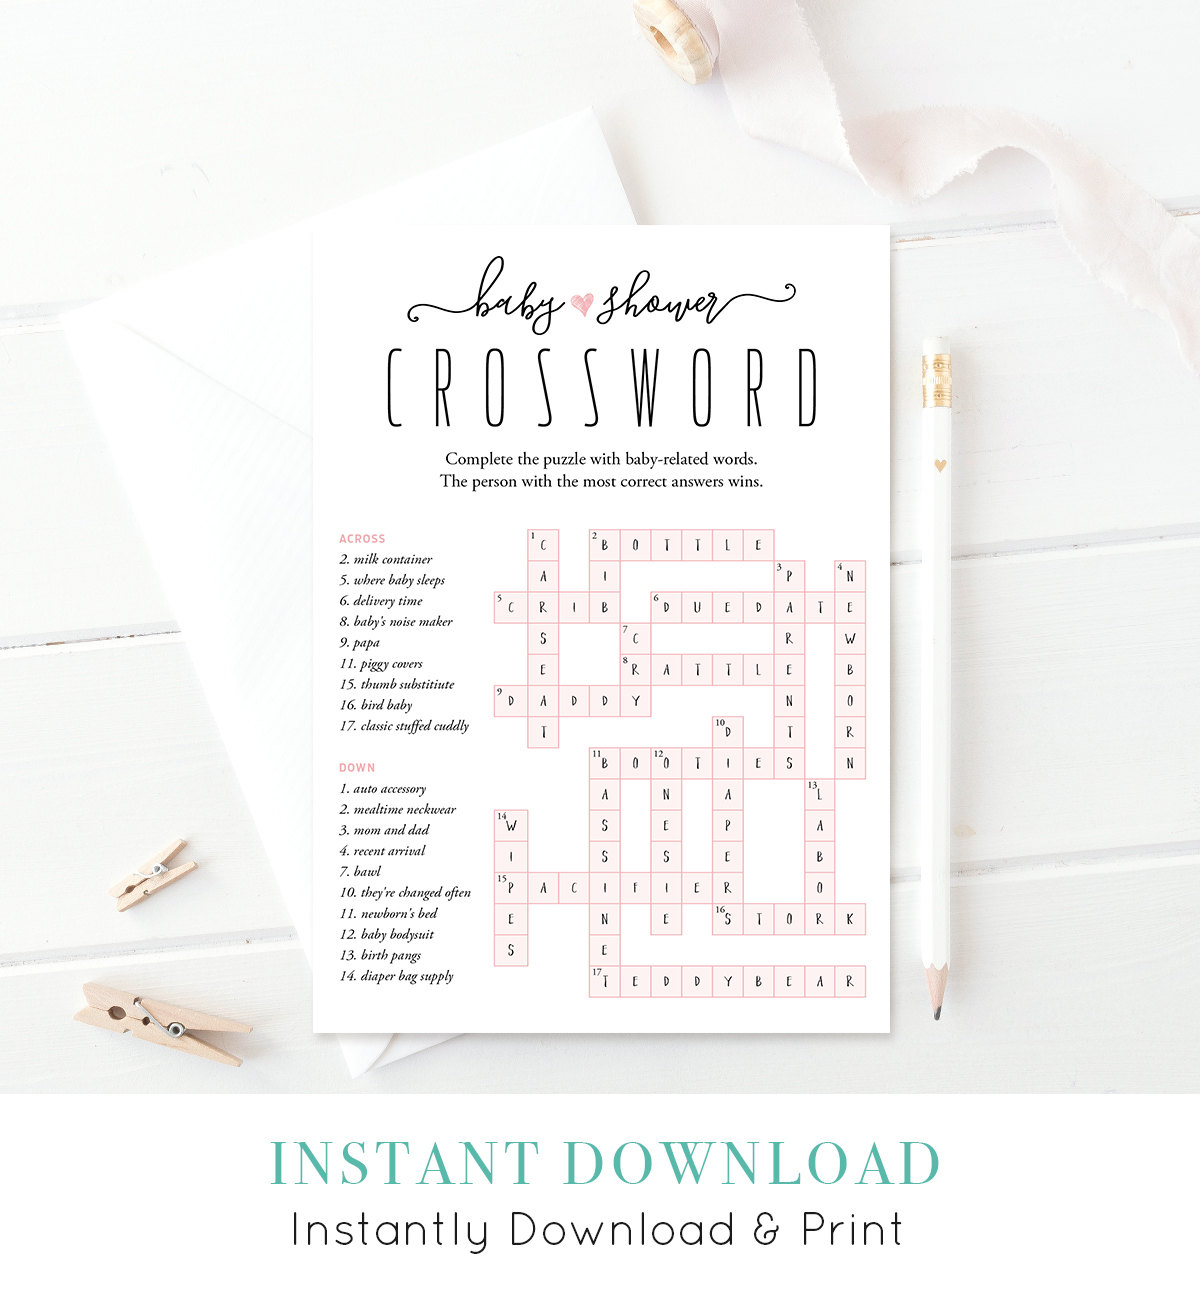 Baby Shower Crossword Puzzle Baby Shower Games Printable | Etsy - Printable Baby Shower Crossword Puzzle